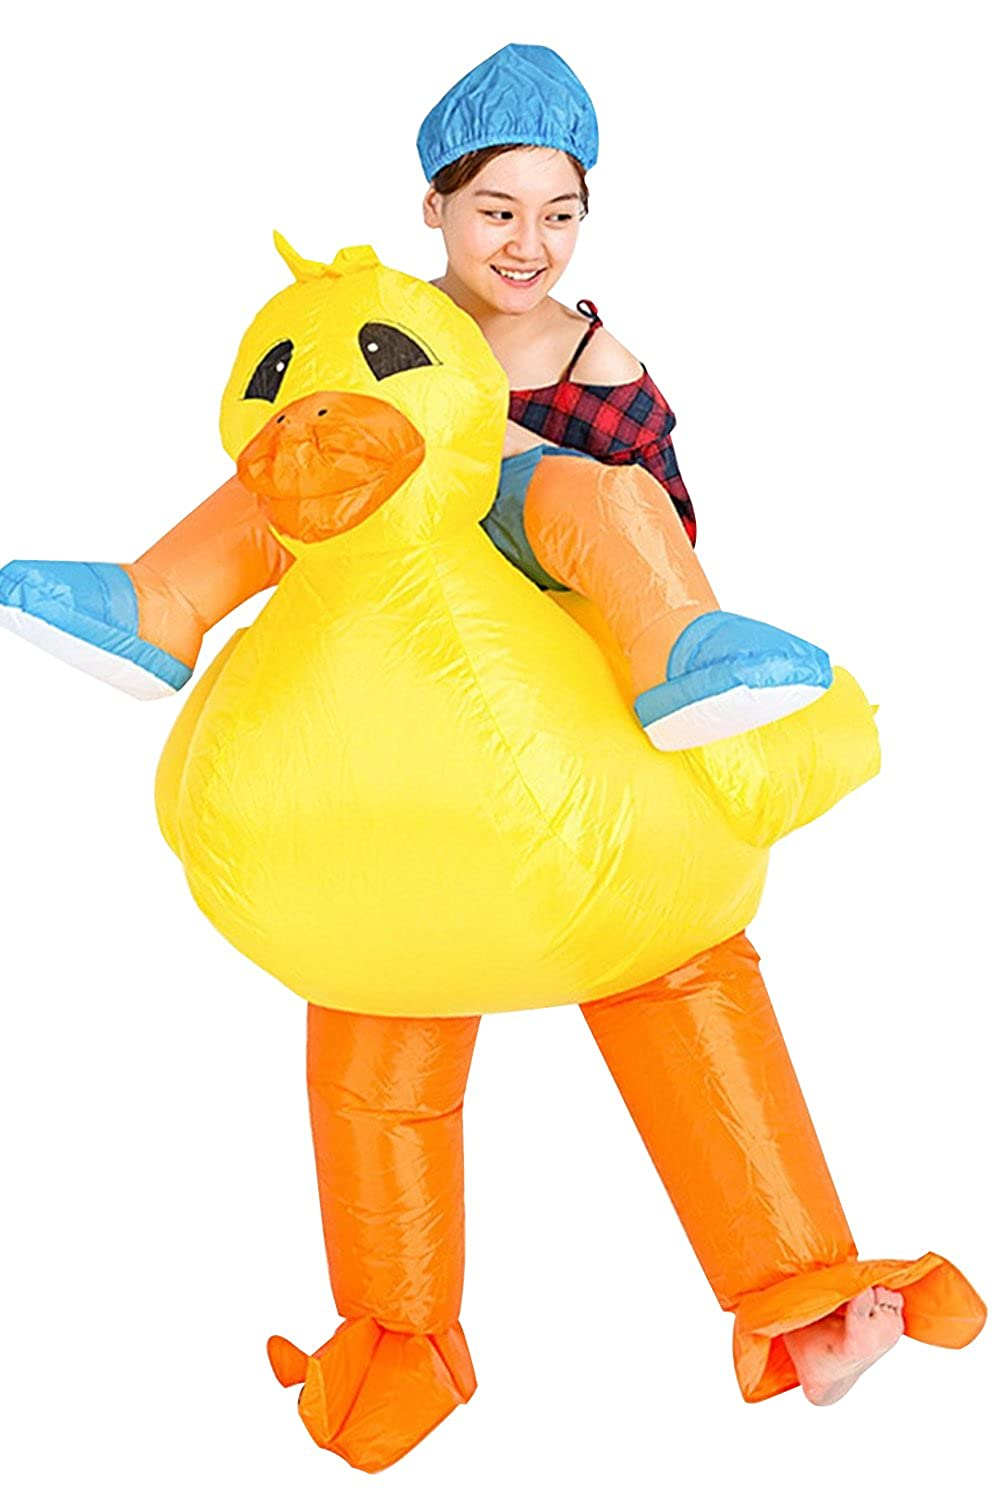 Inflatable Rider Costume Fancy Dress Yellow Duck Duckie Quacker Animal Funny Suit Mount